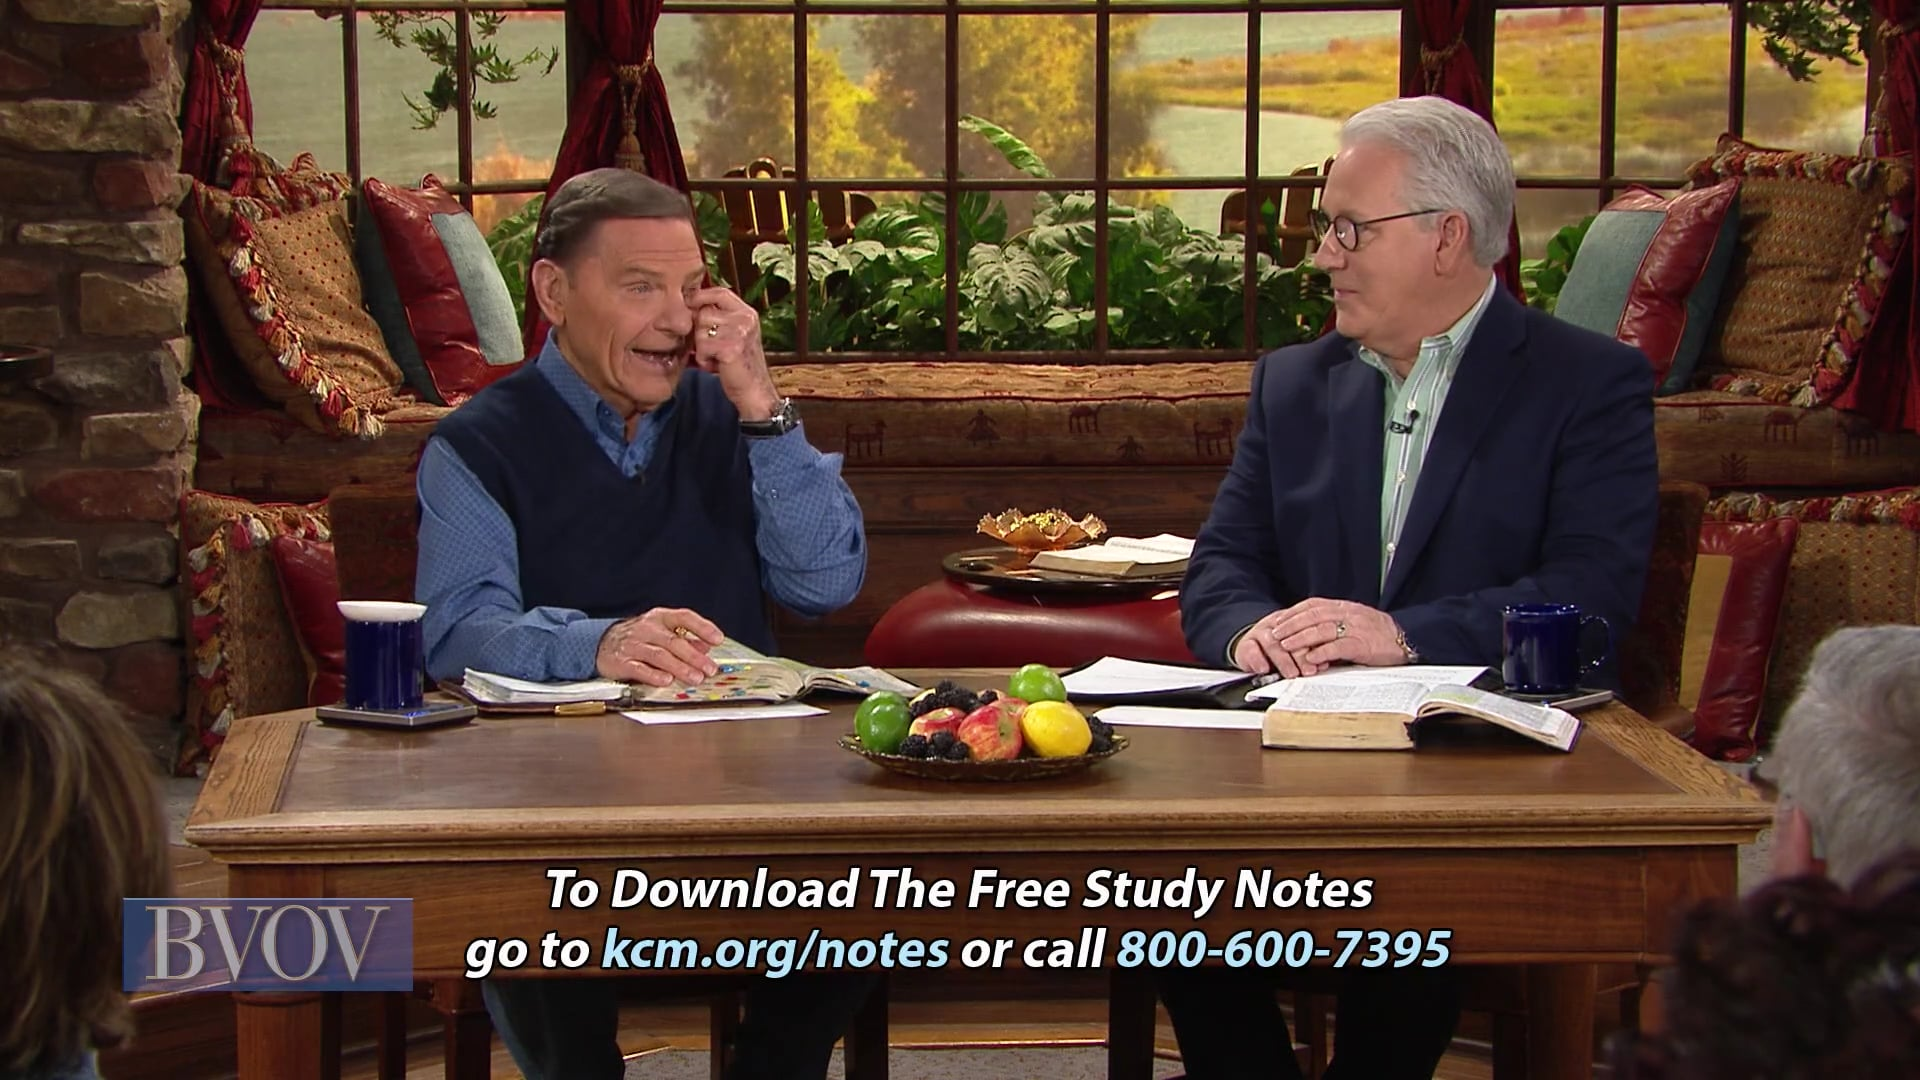 Your covenant with God will give you inside information in advance! Join Kenneth Copeland and Professor Greg Stephens on Believer's Voice of Victory as they share how, just as God told Abraham about the destruction of Sodom and Gomorrah in advance, God will not leave you without the guidance of the Holy Spirit for your protection. You are protected in covenant partnership with God!